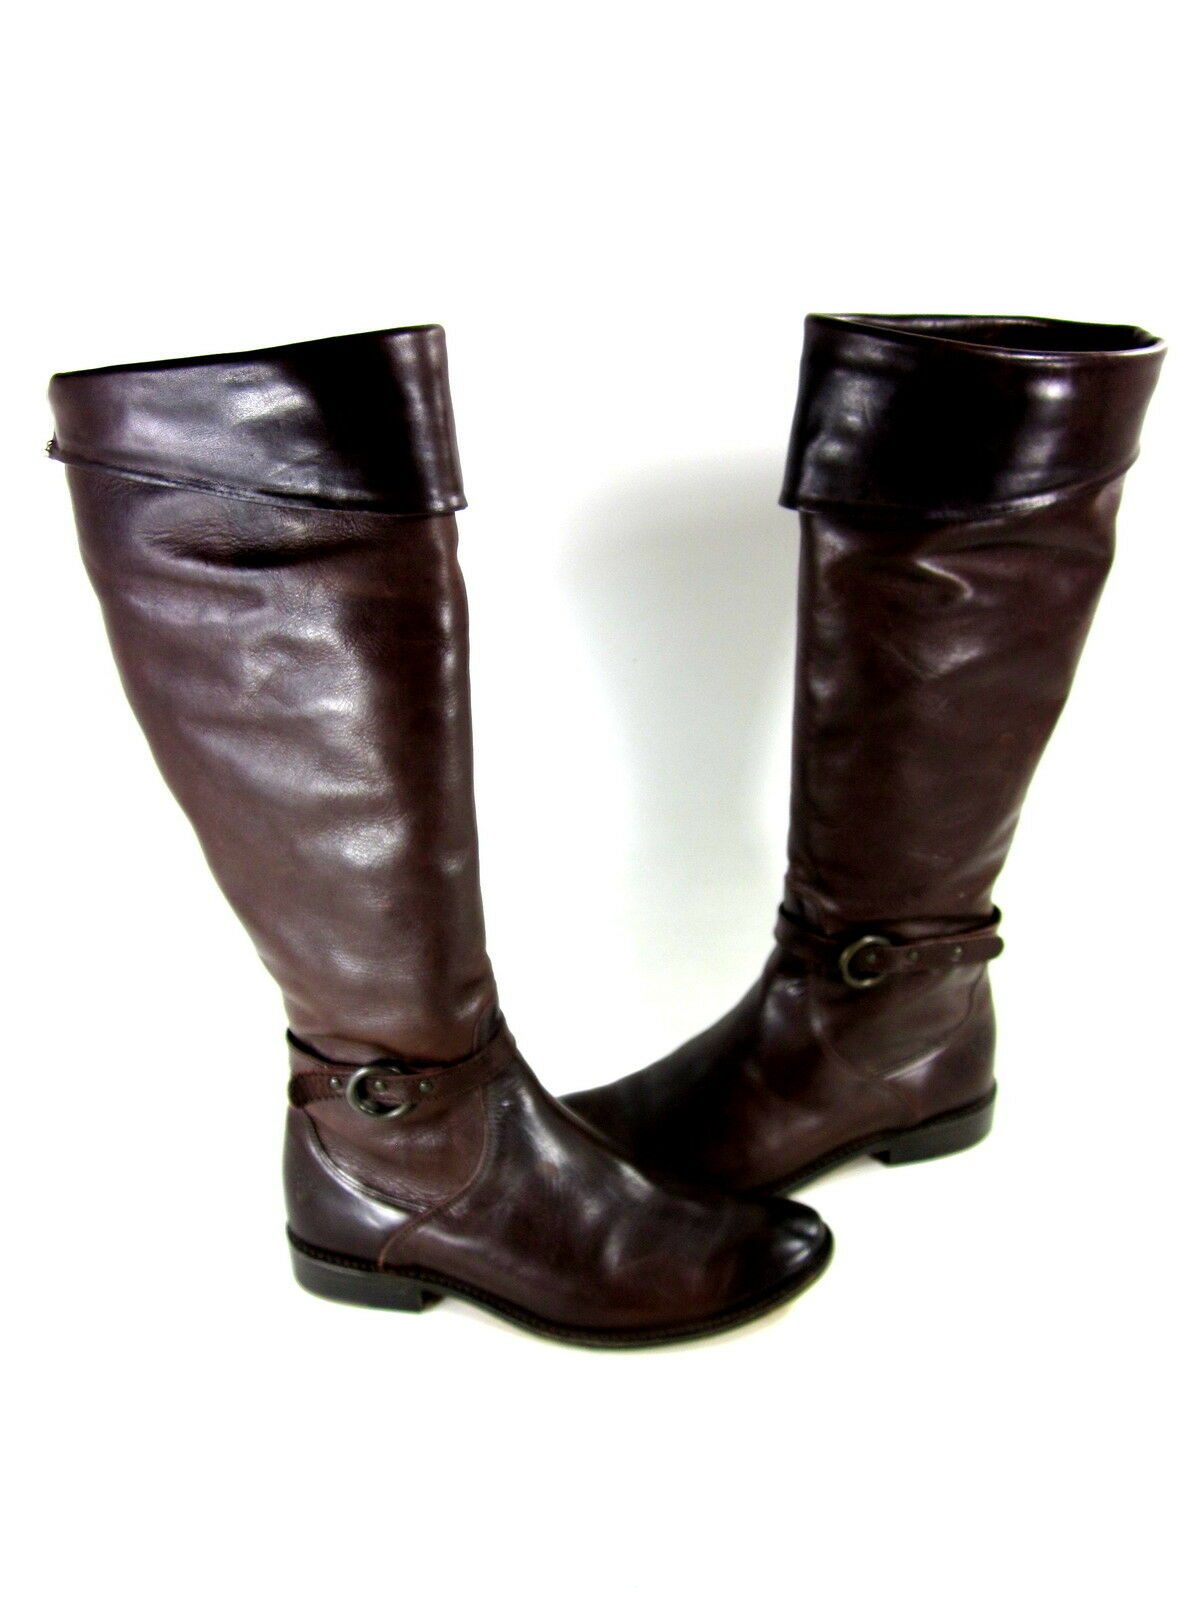 FRYE WOMEN'S SHIRLEY CUFFED FASHION RIDING BOOTS DARK BROWN LEATHER US SZ 6.5 M